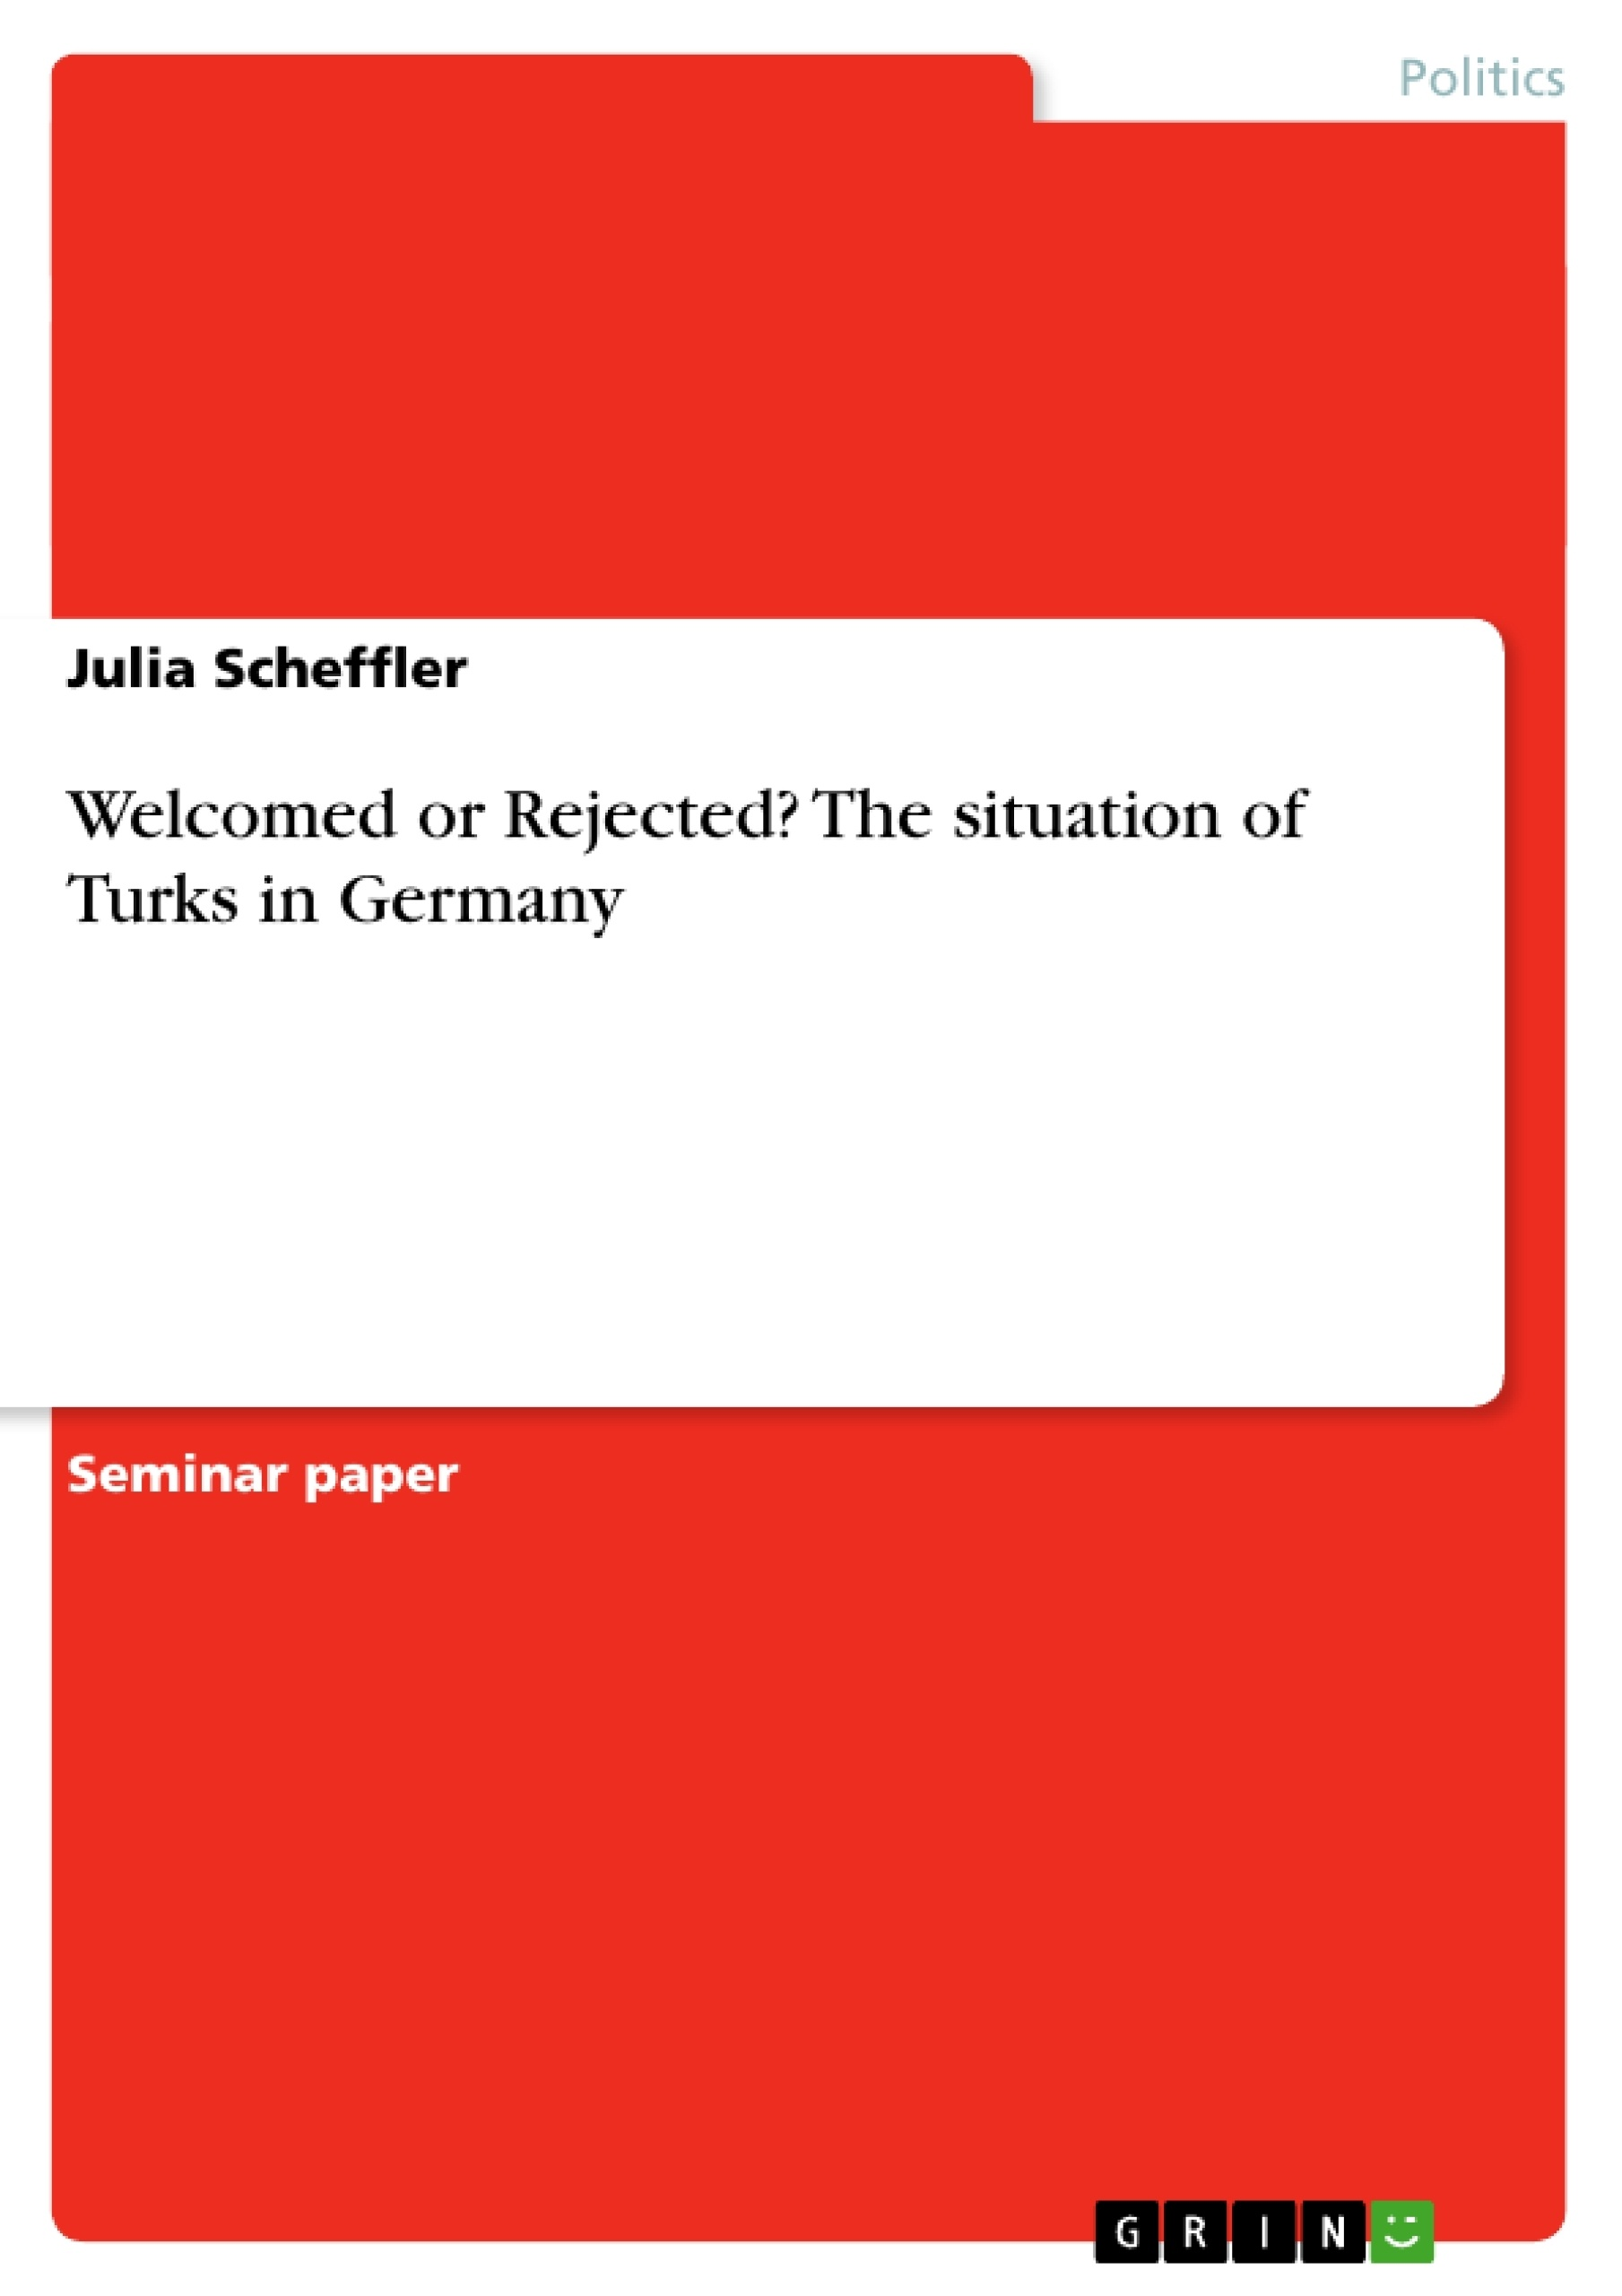 Title: Welcomed or Rejected? The situation of Turks in Germany